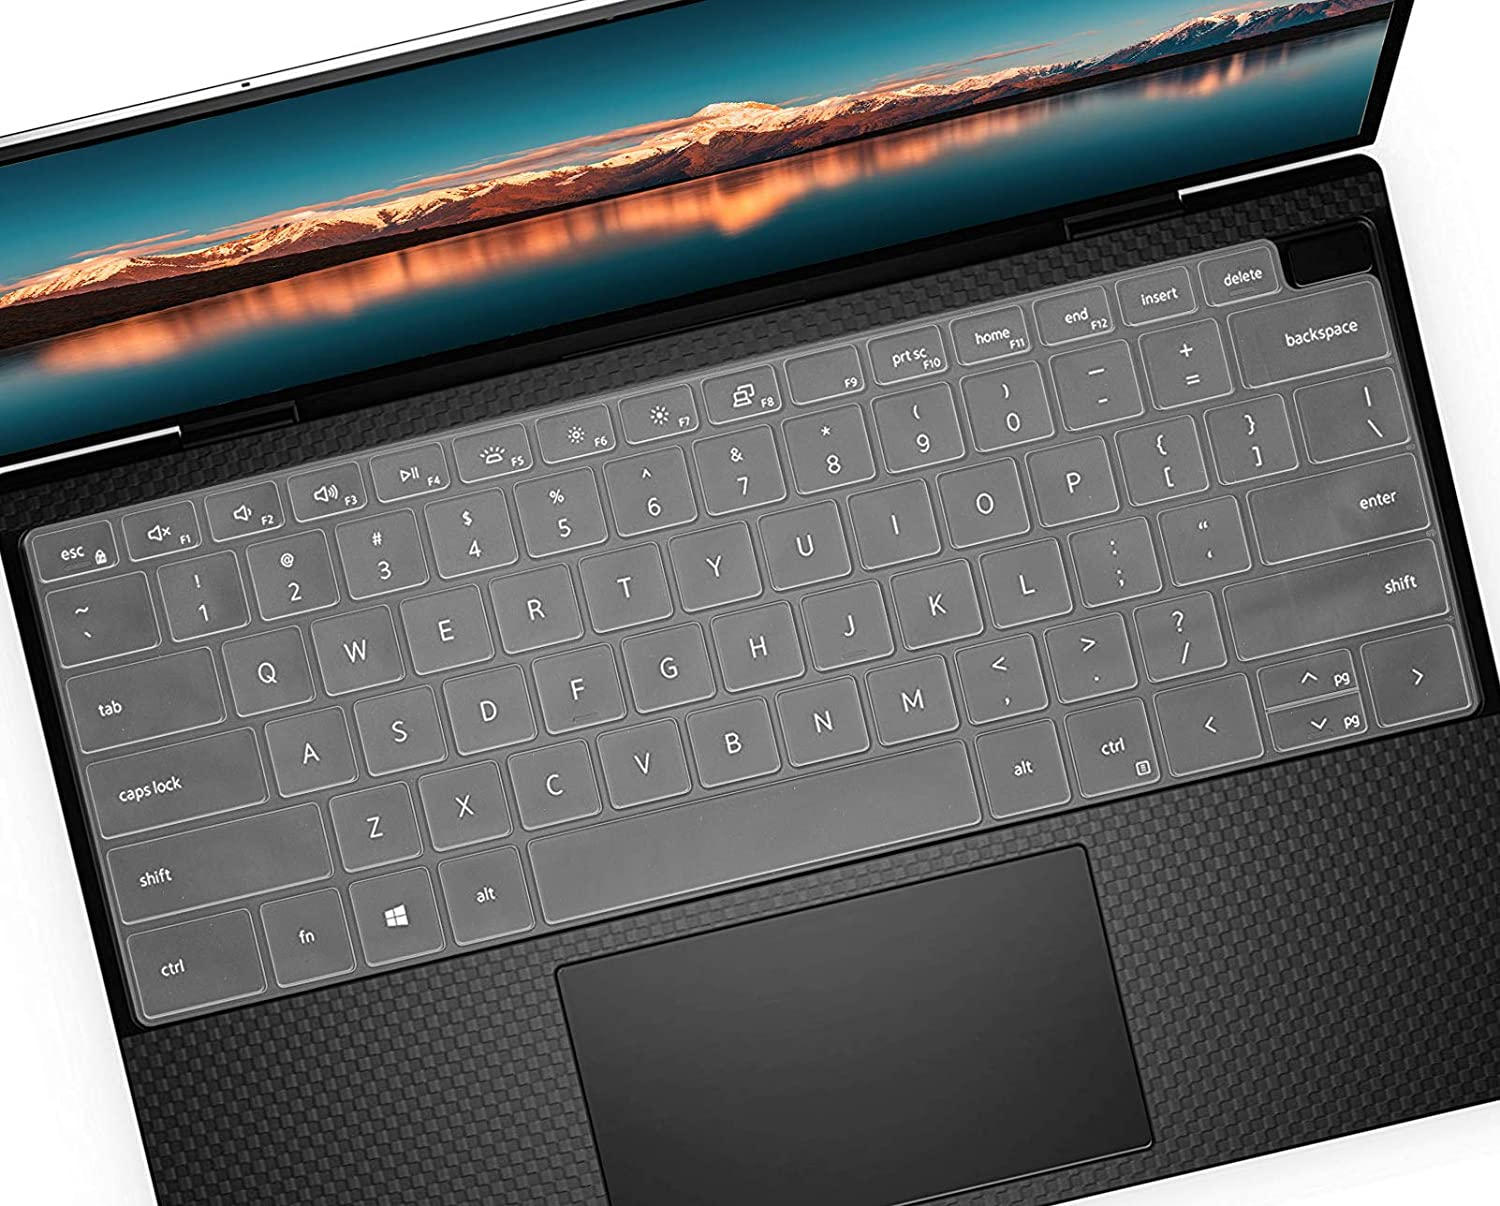 Keyboard Cover Skin for 2020 Dell XPS 13 9300 9310 13.4 inch Laptop, Dell XPS 13 9300 Accessories, Dell XPS 13 9310 2-in-1 Touch-Screen Laptop Keyboard Protective Skins- Clear